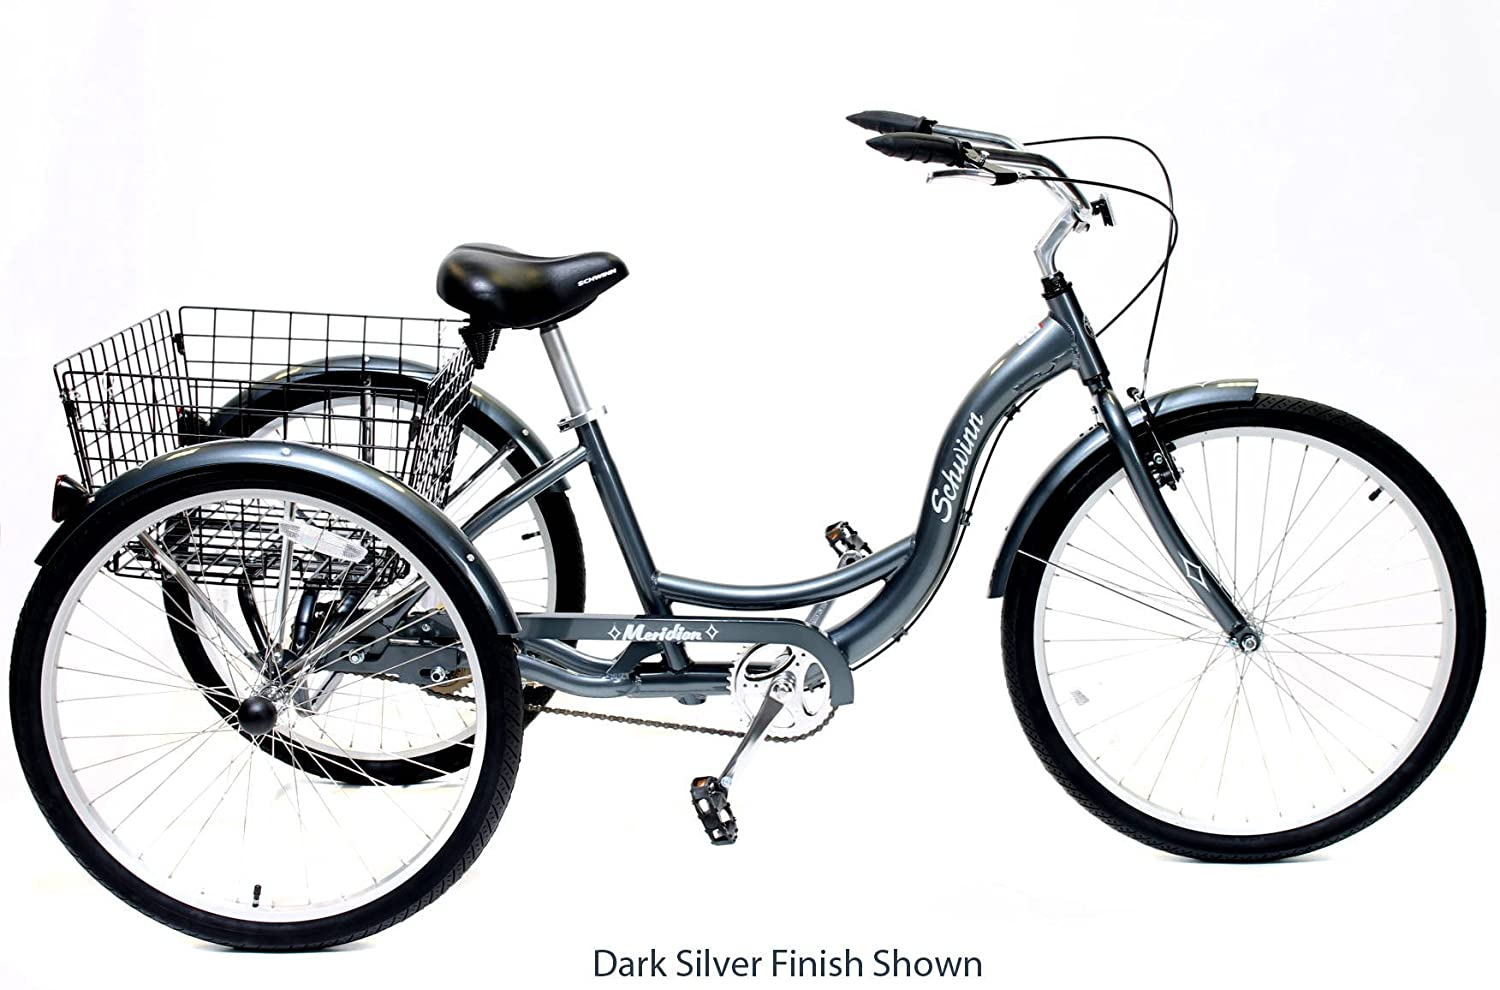 f108ff6128a Amazon.com : Formosa Covers Adult Tricycle Cover fits Schwinn, Westport and  Meridian - Protect Your 3-Wheel Bike from Rain, Dust, Debris, ...